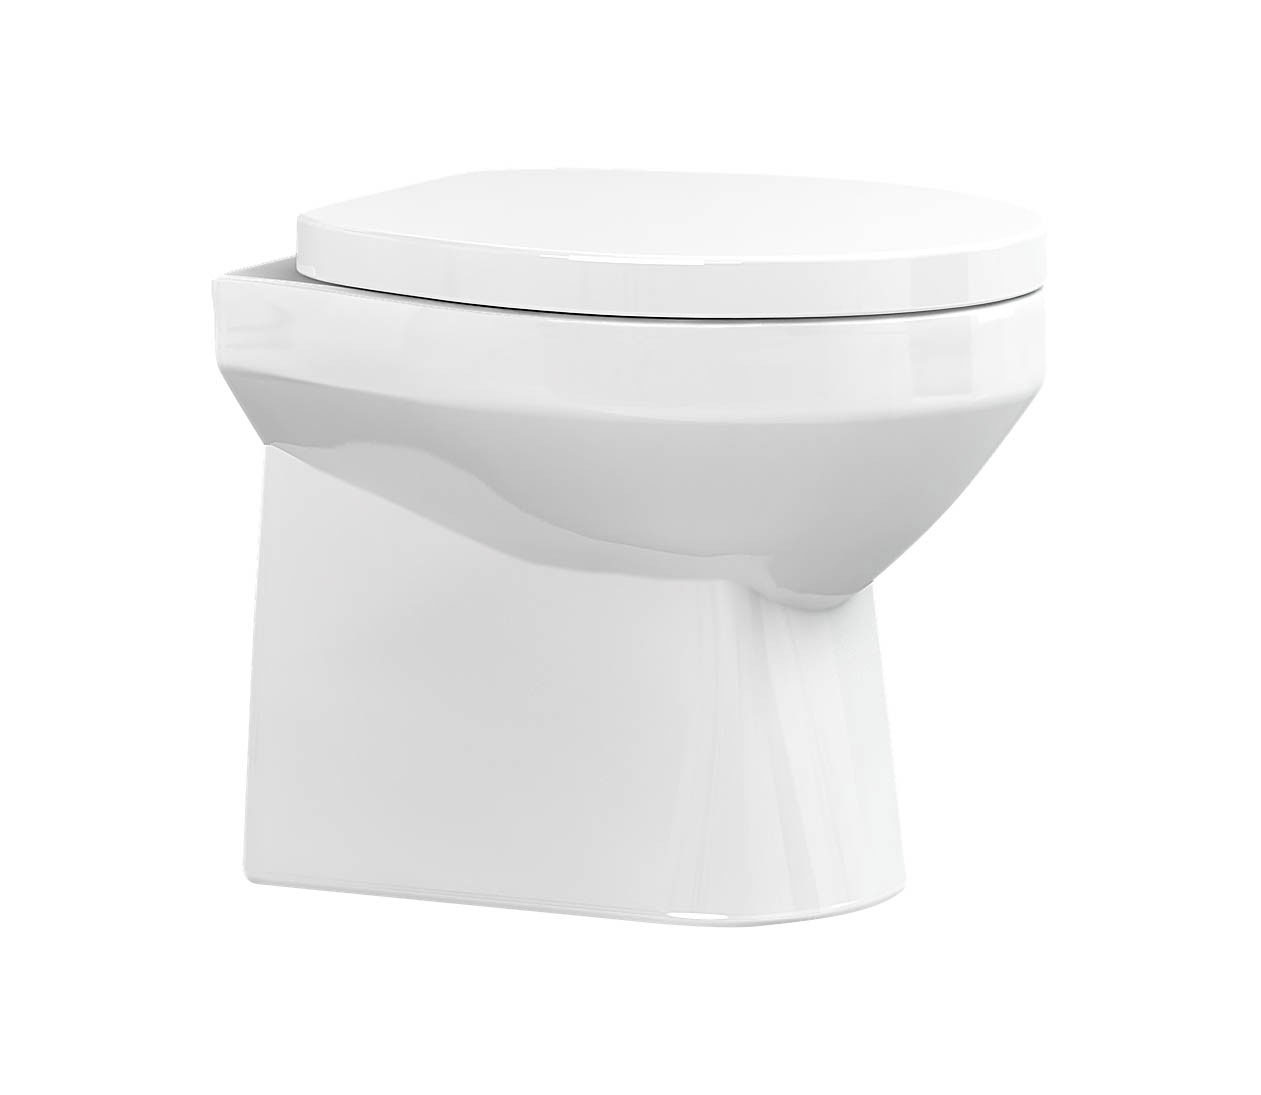 click on Distinct Short Semi Recessed Basin image to enlarge